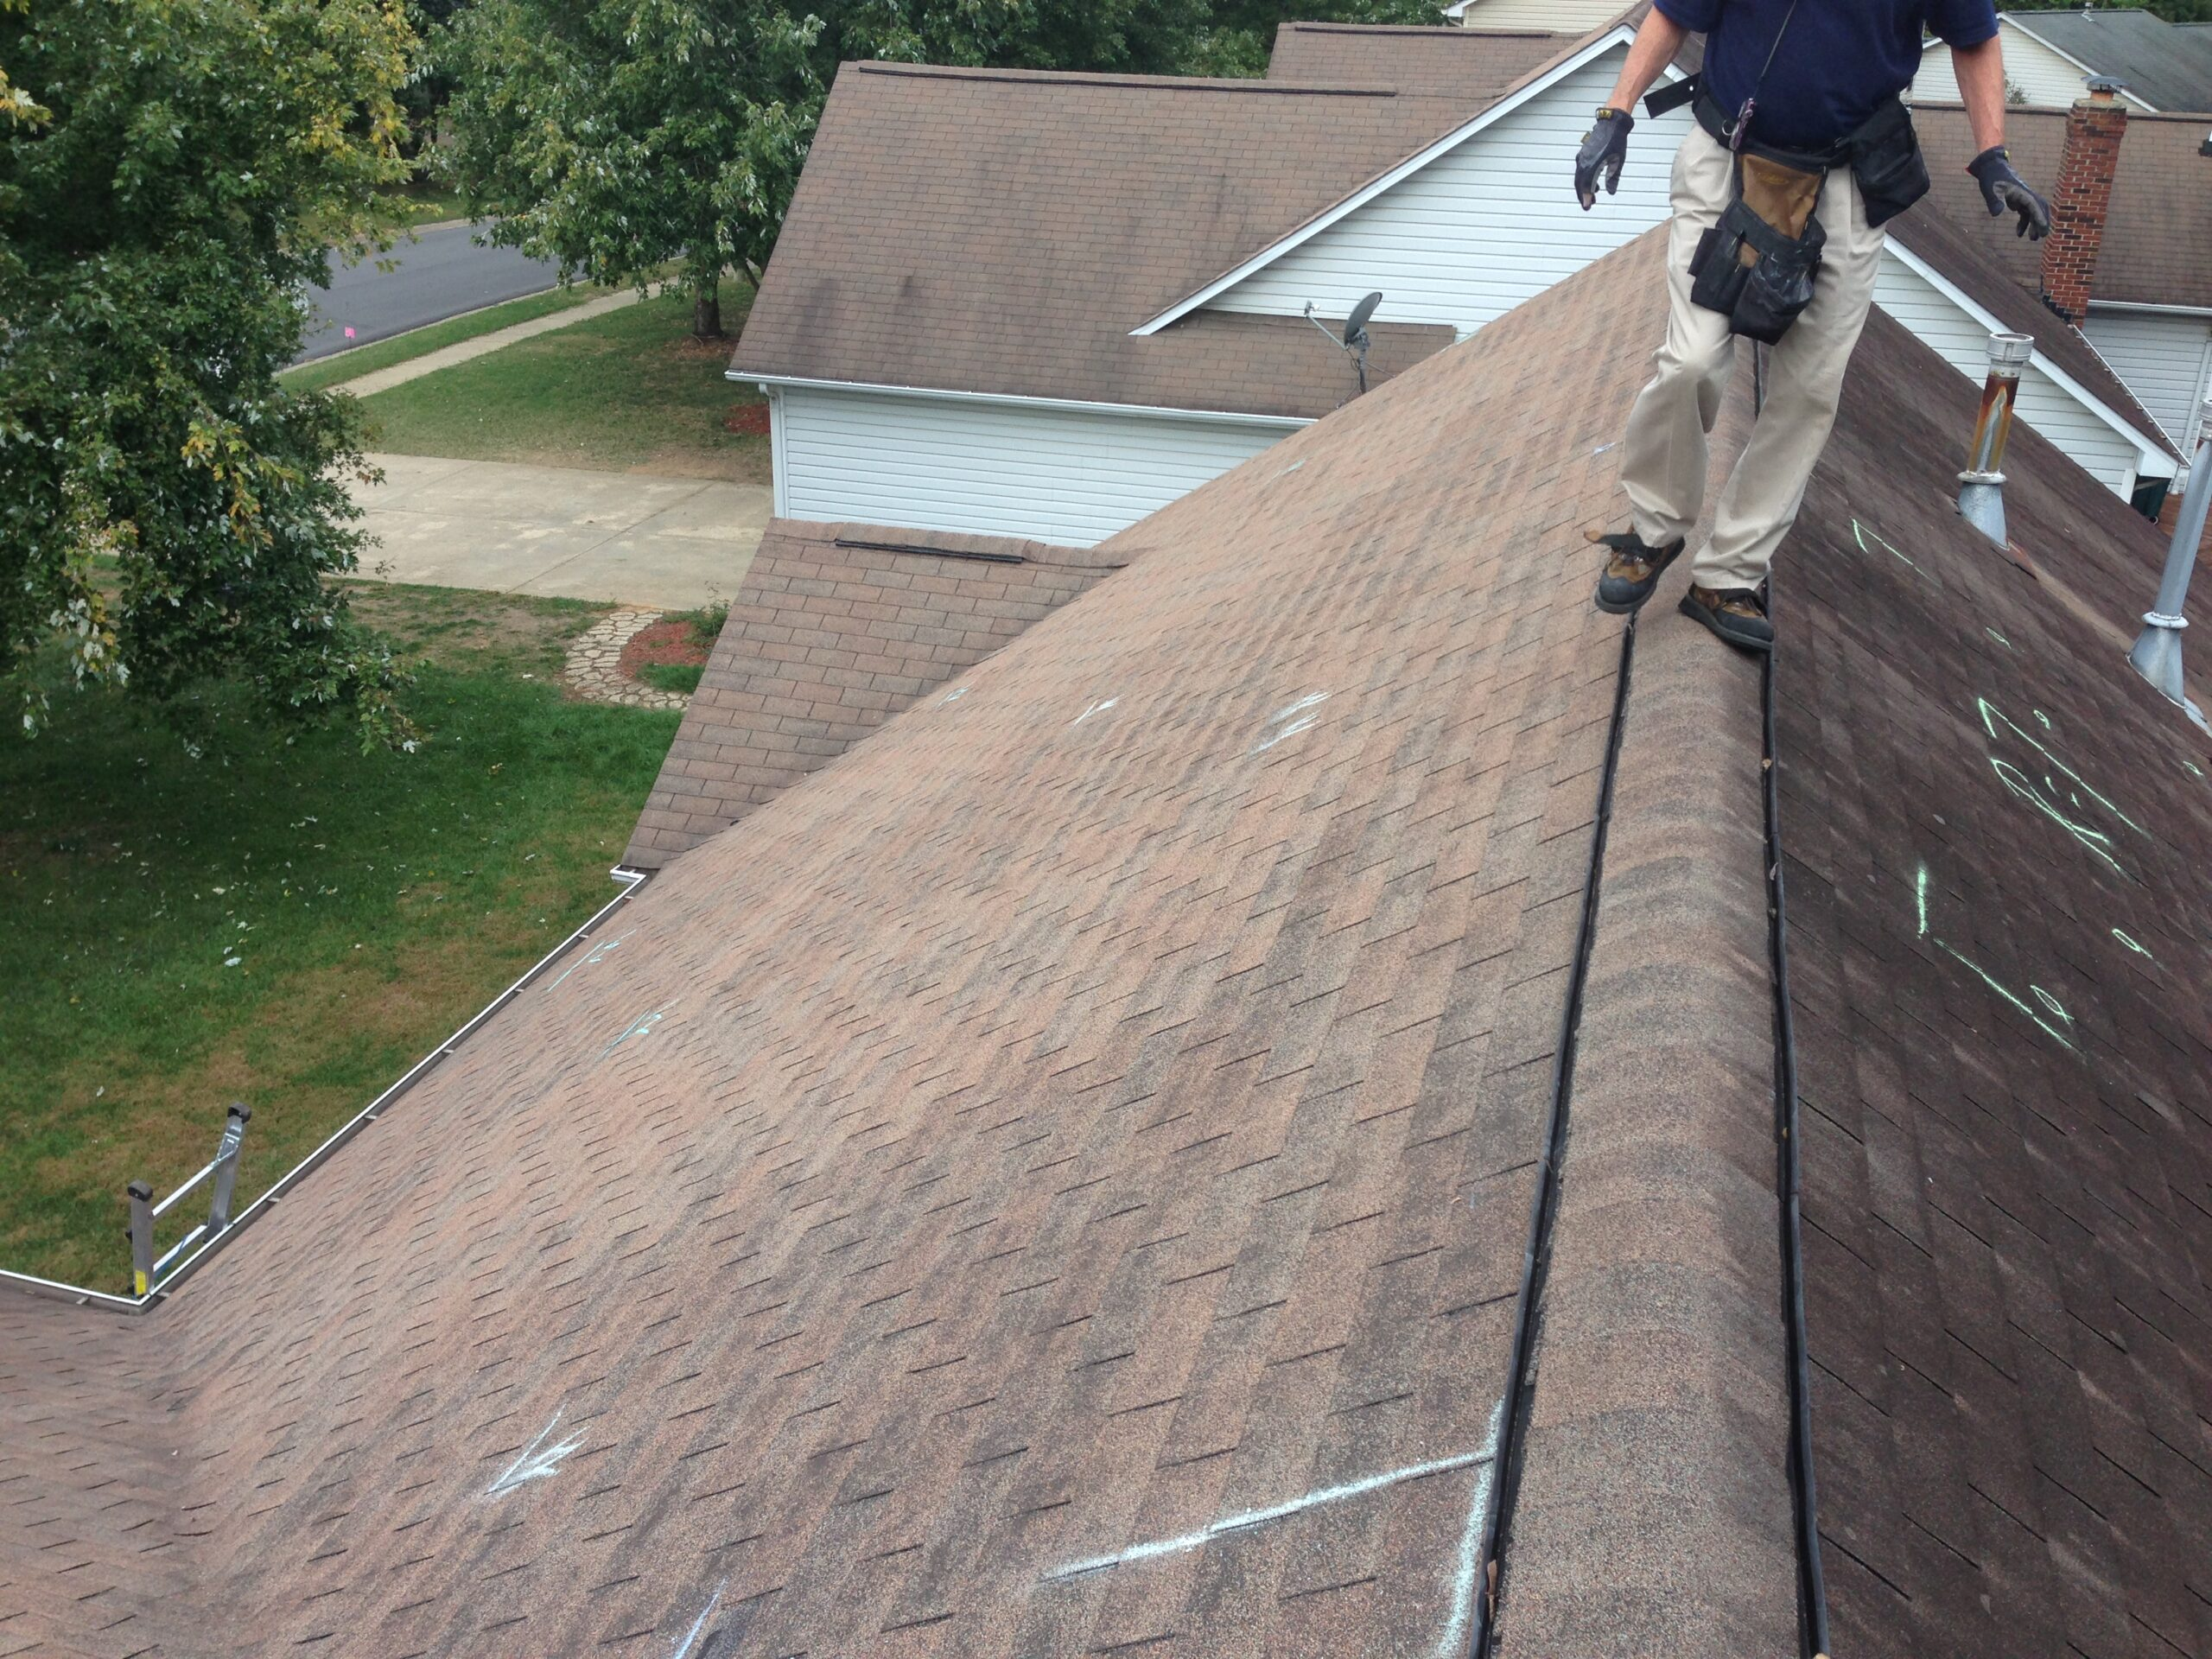 Homeowners Insurance: What is the process to replace a roof with storm damage